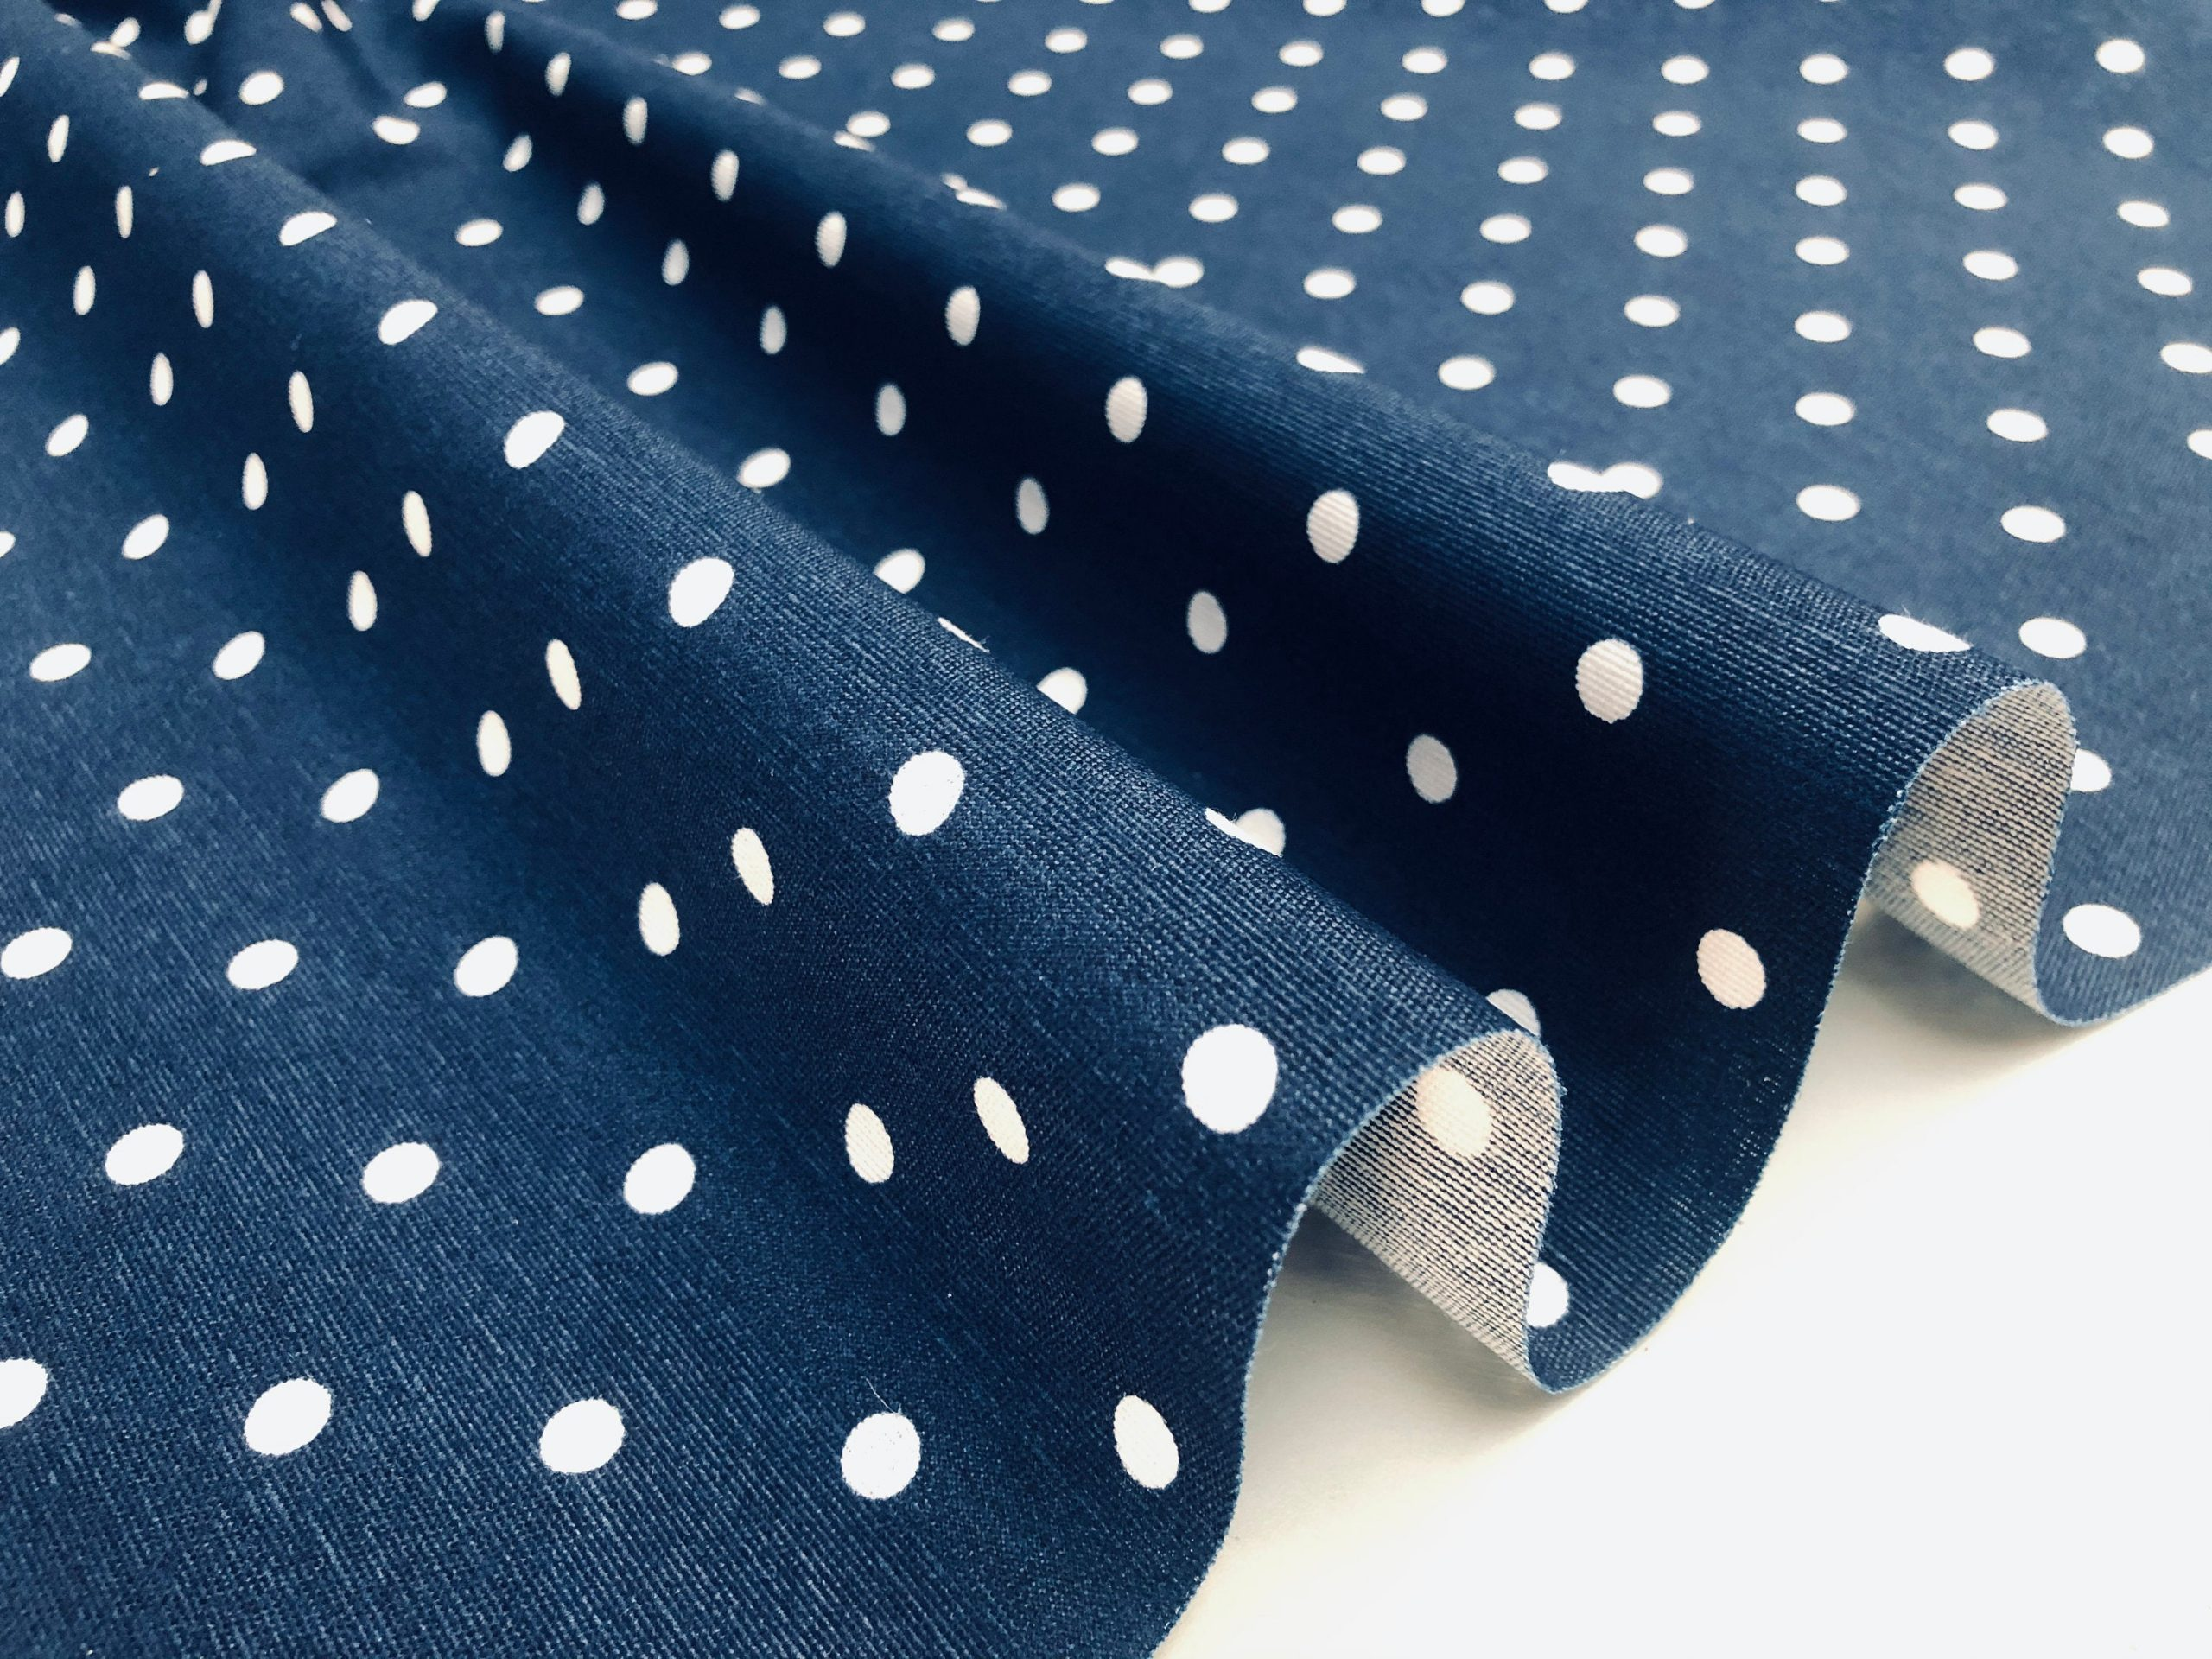 NAVY BLUE Polka Dot Fabric White Spots Dots PolyCotton Material Classic Chic Textile Home Decor Dress Curtains – 55''/140cm Wide Canvas